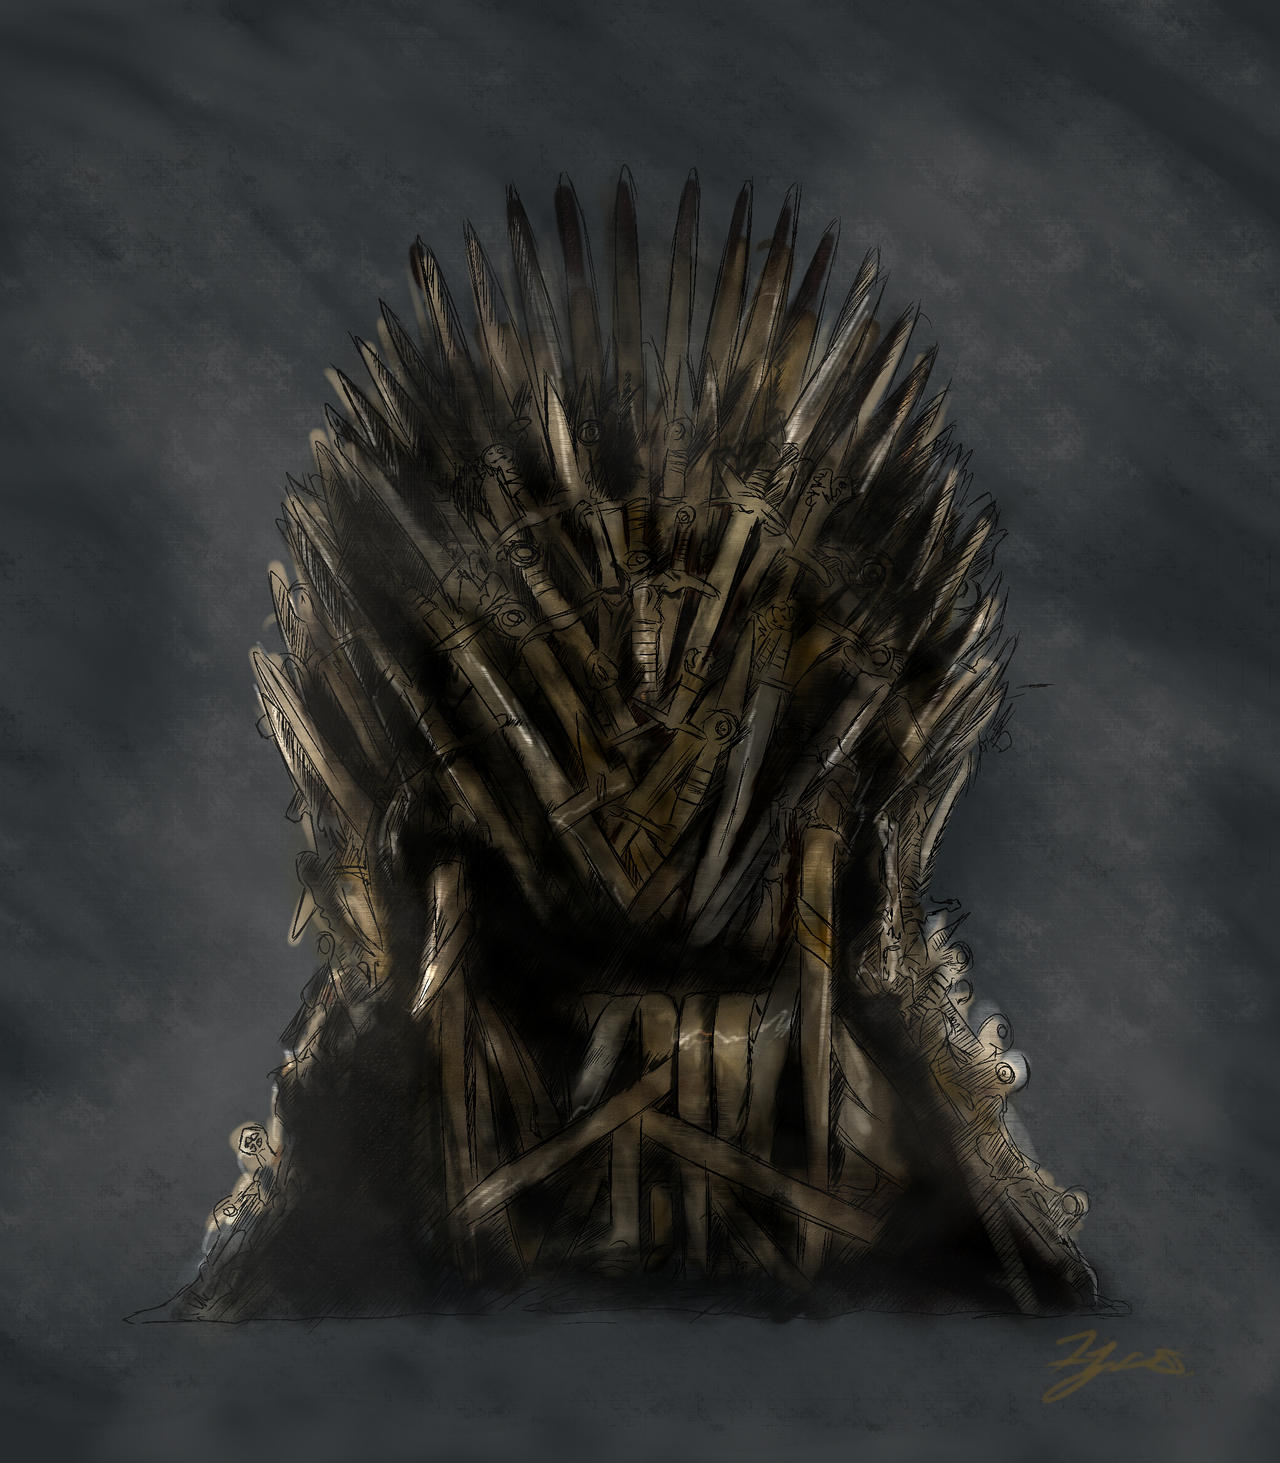 The iron throne by june malatesta on deviantart for Iron throne painting